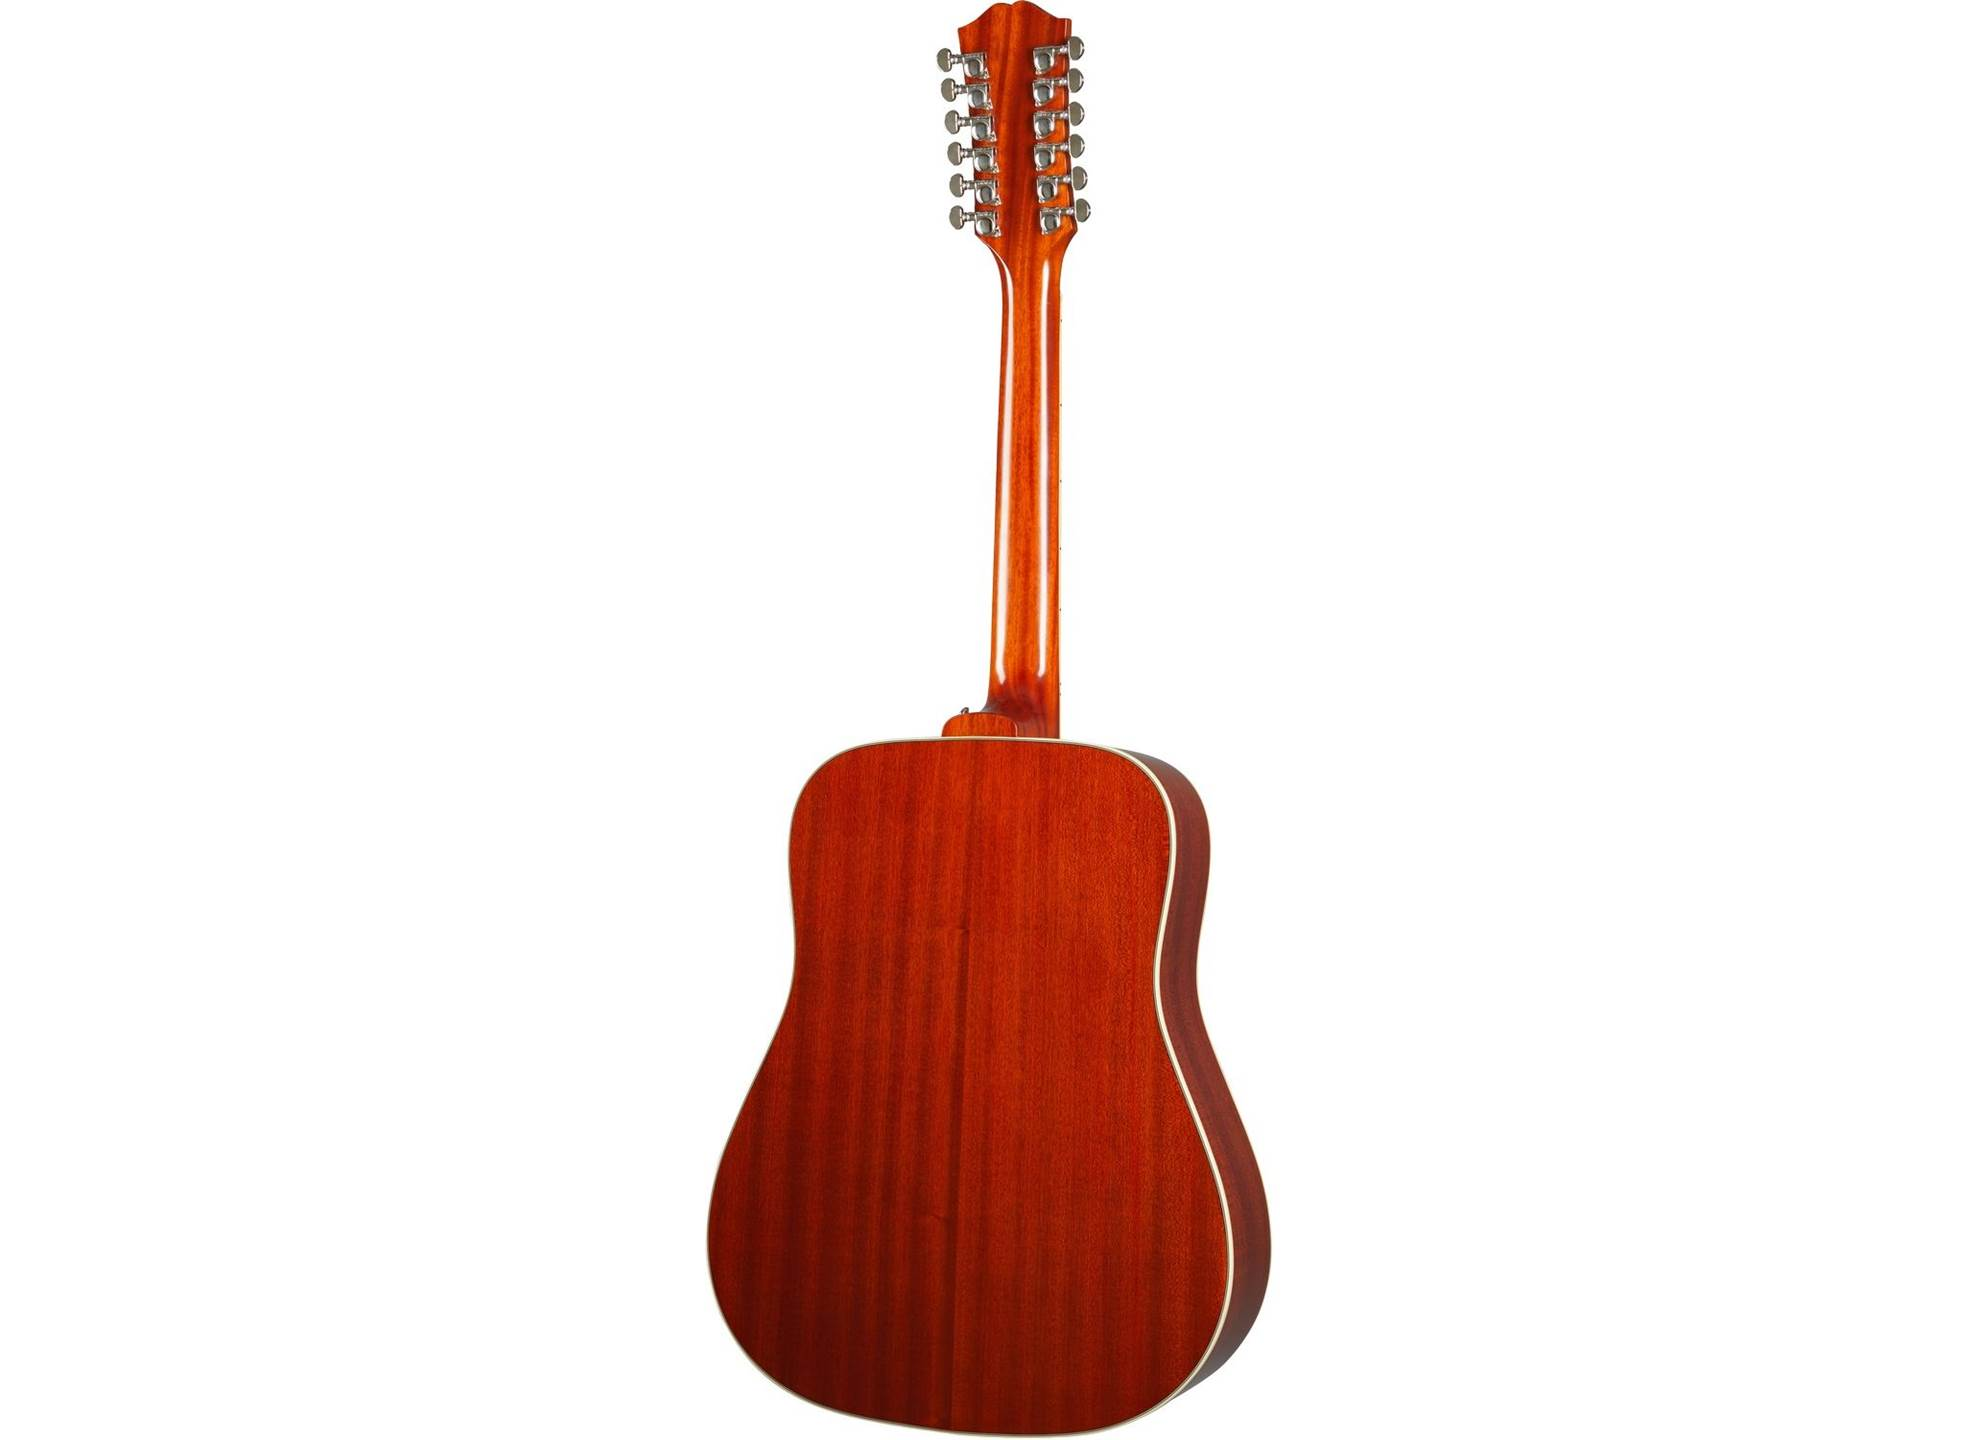 Hummingbird 12 Aged Cherry Sunburst Gloss